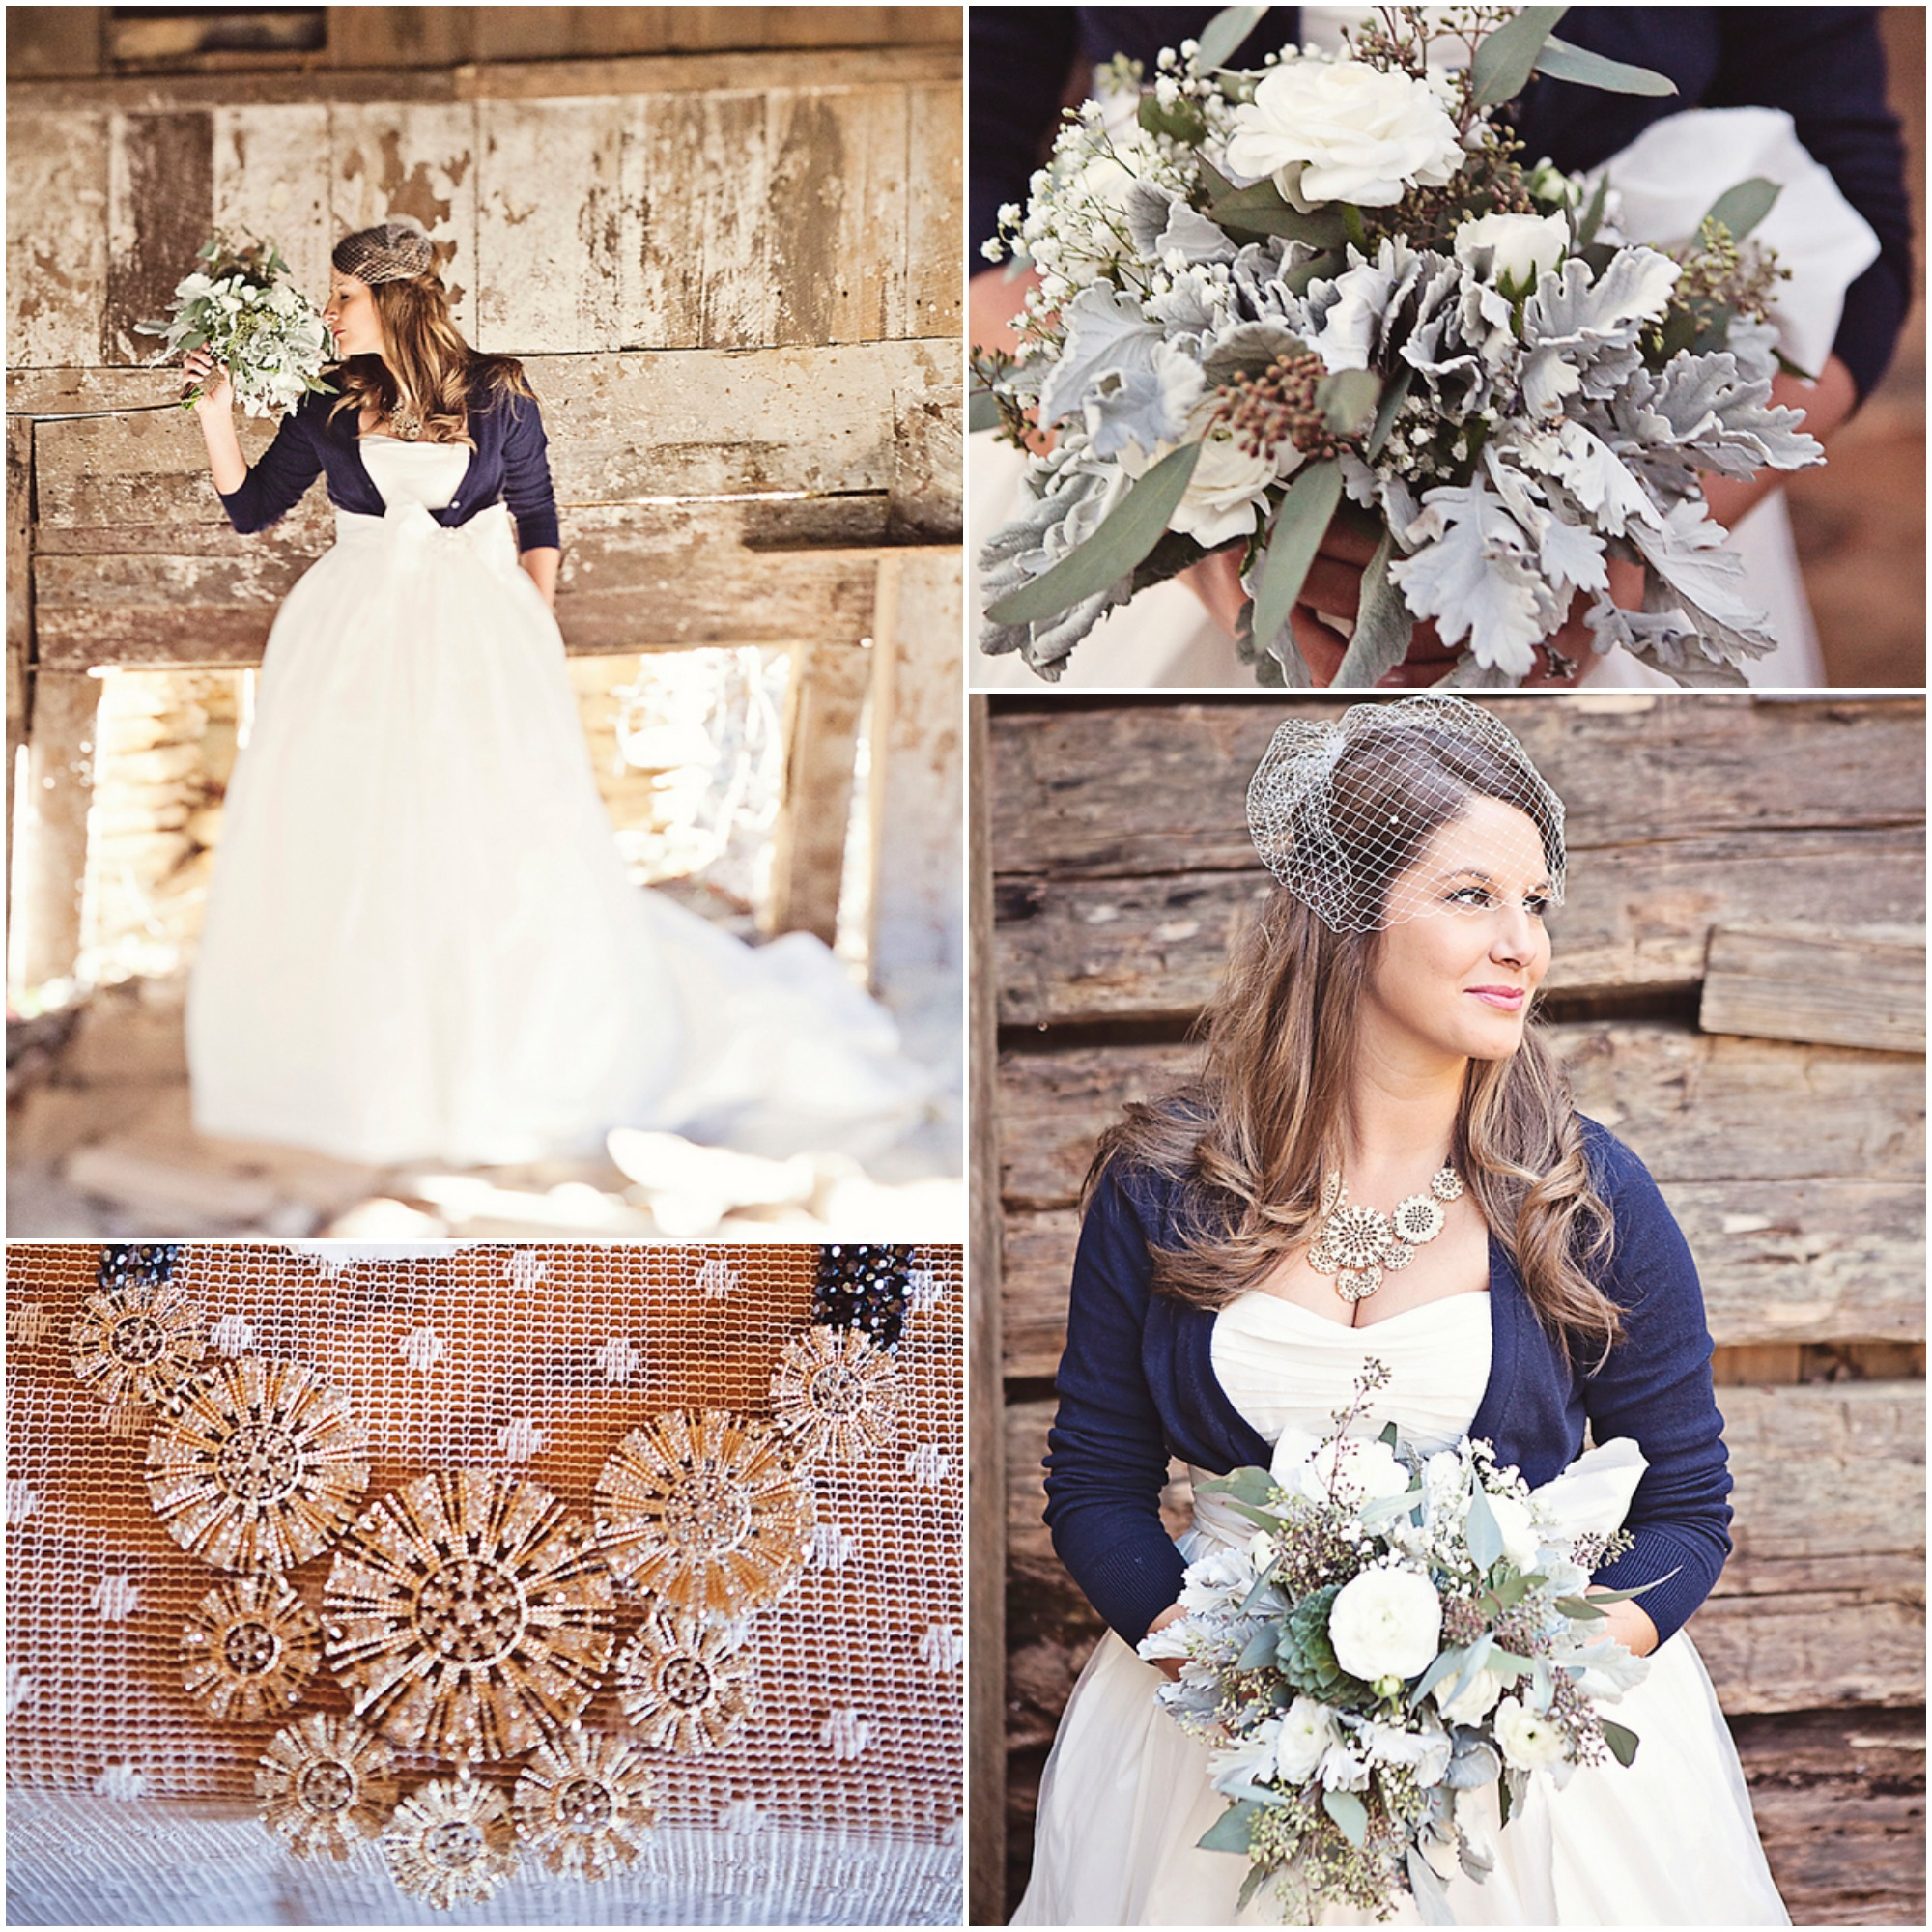 Rustic Wedding Dress Ideas: Country Wedding Dress, Necklace And Bouquet